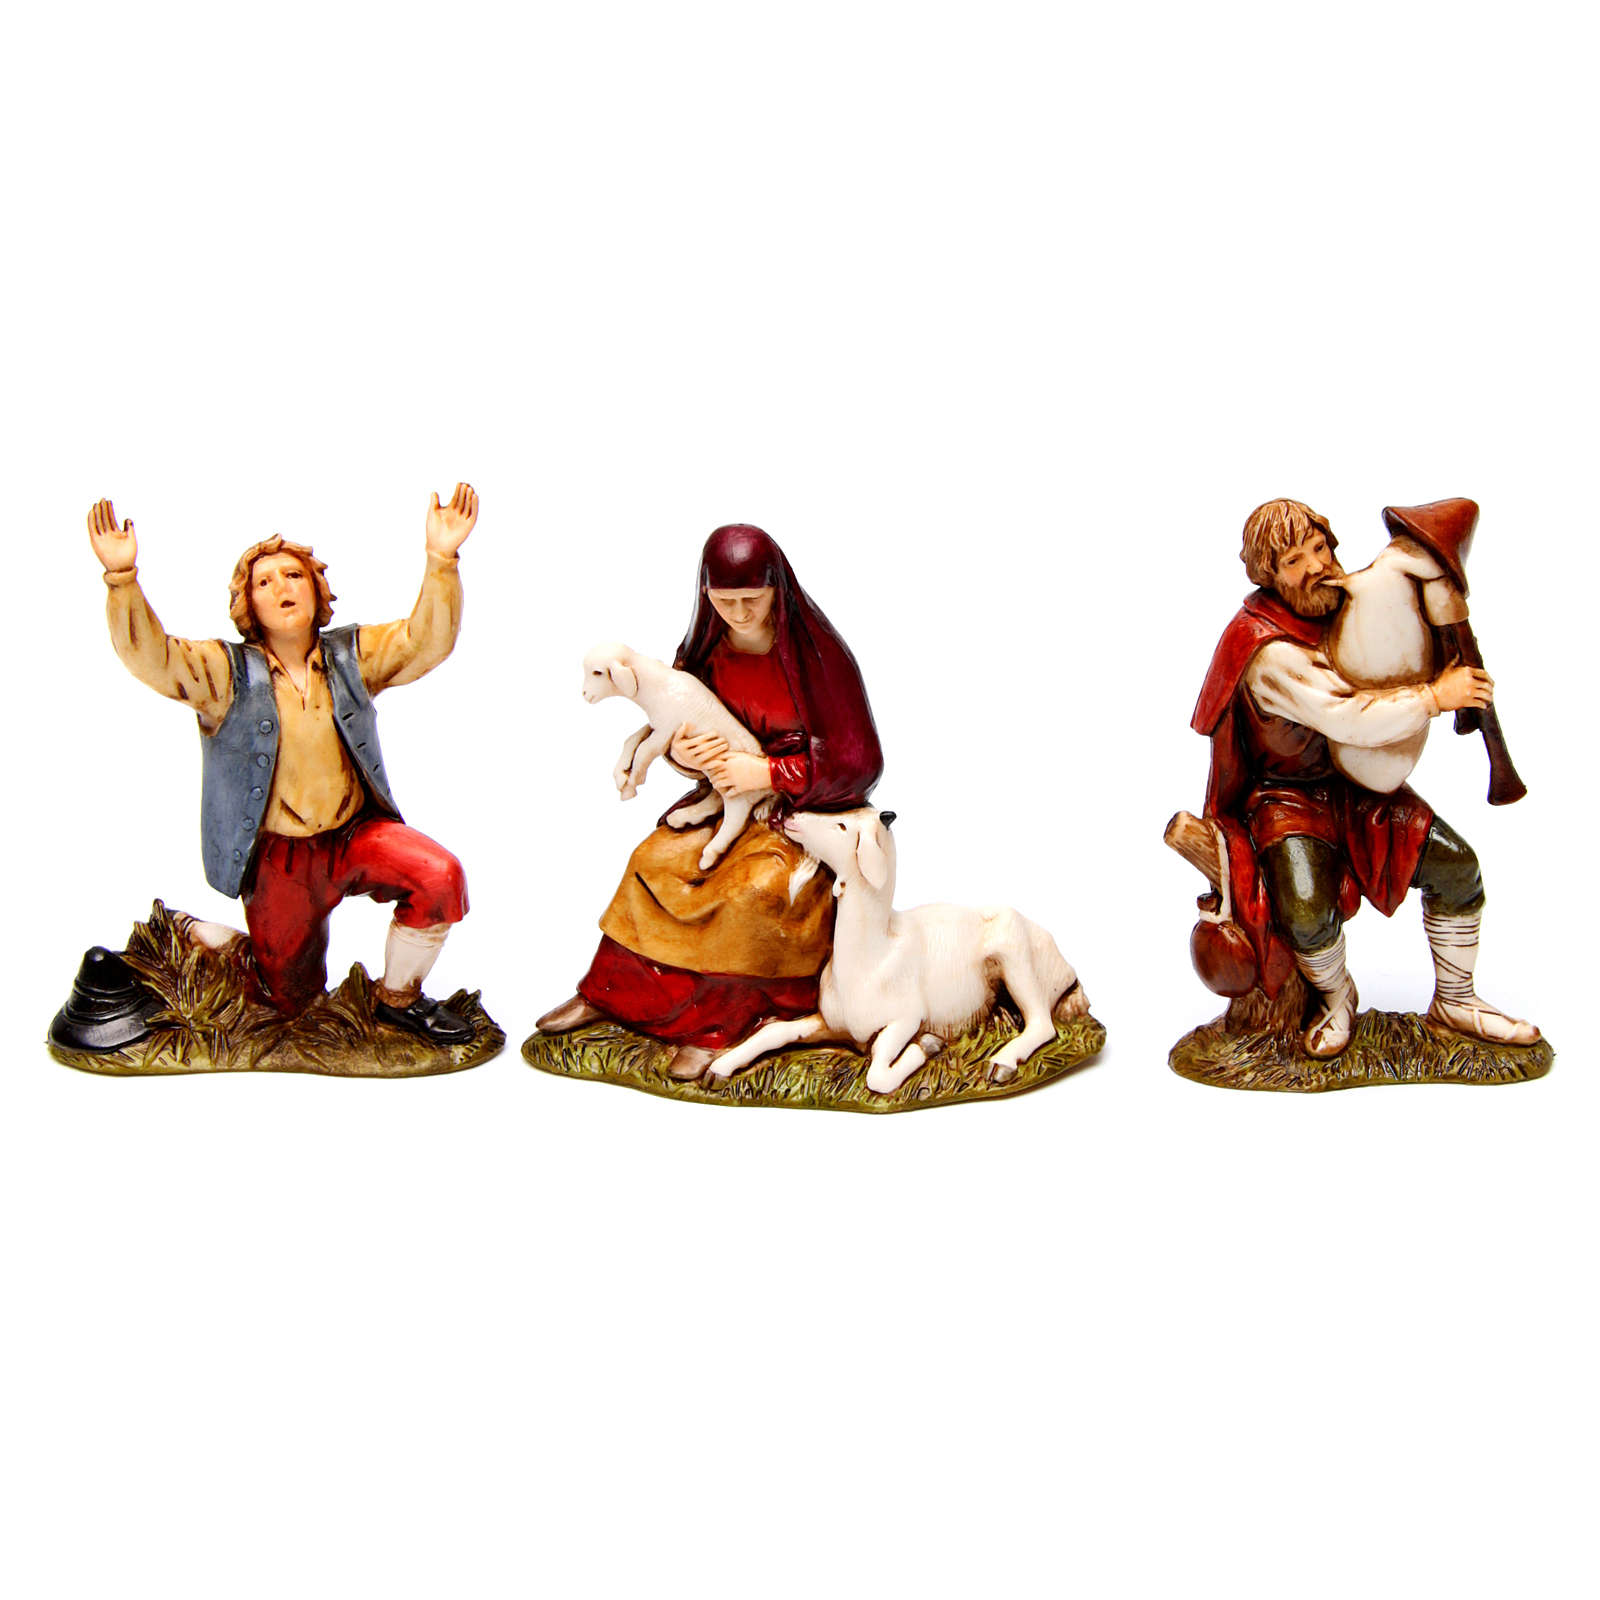 Bagpiper, man in wonder, woman with sheep figurines for Nativity scene Moranduzzo 8 cm 4